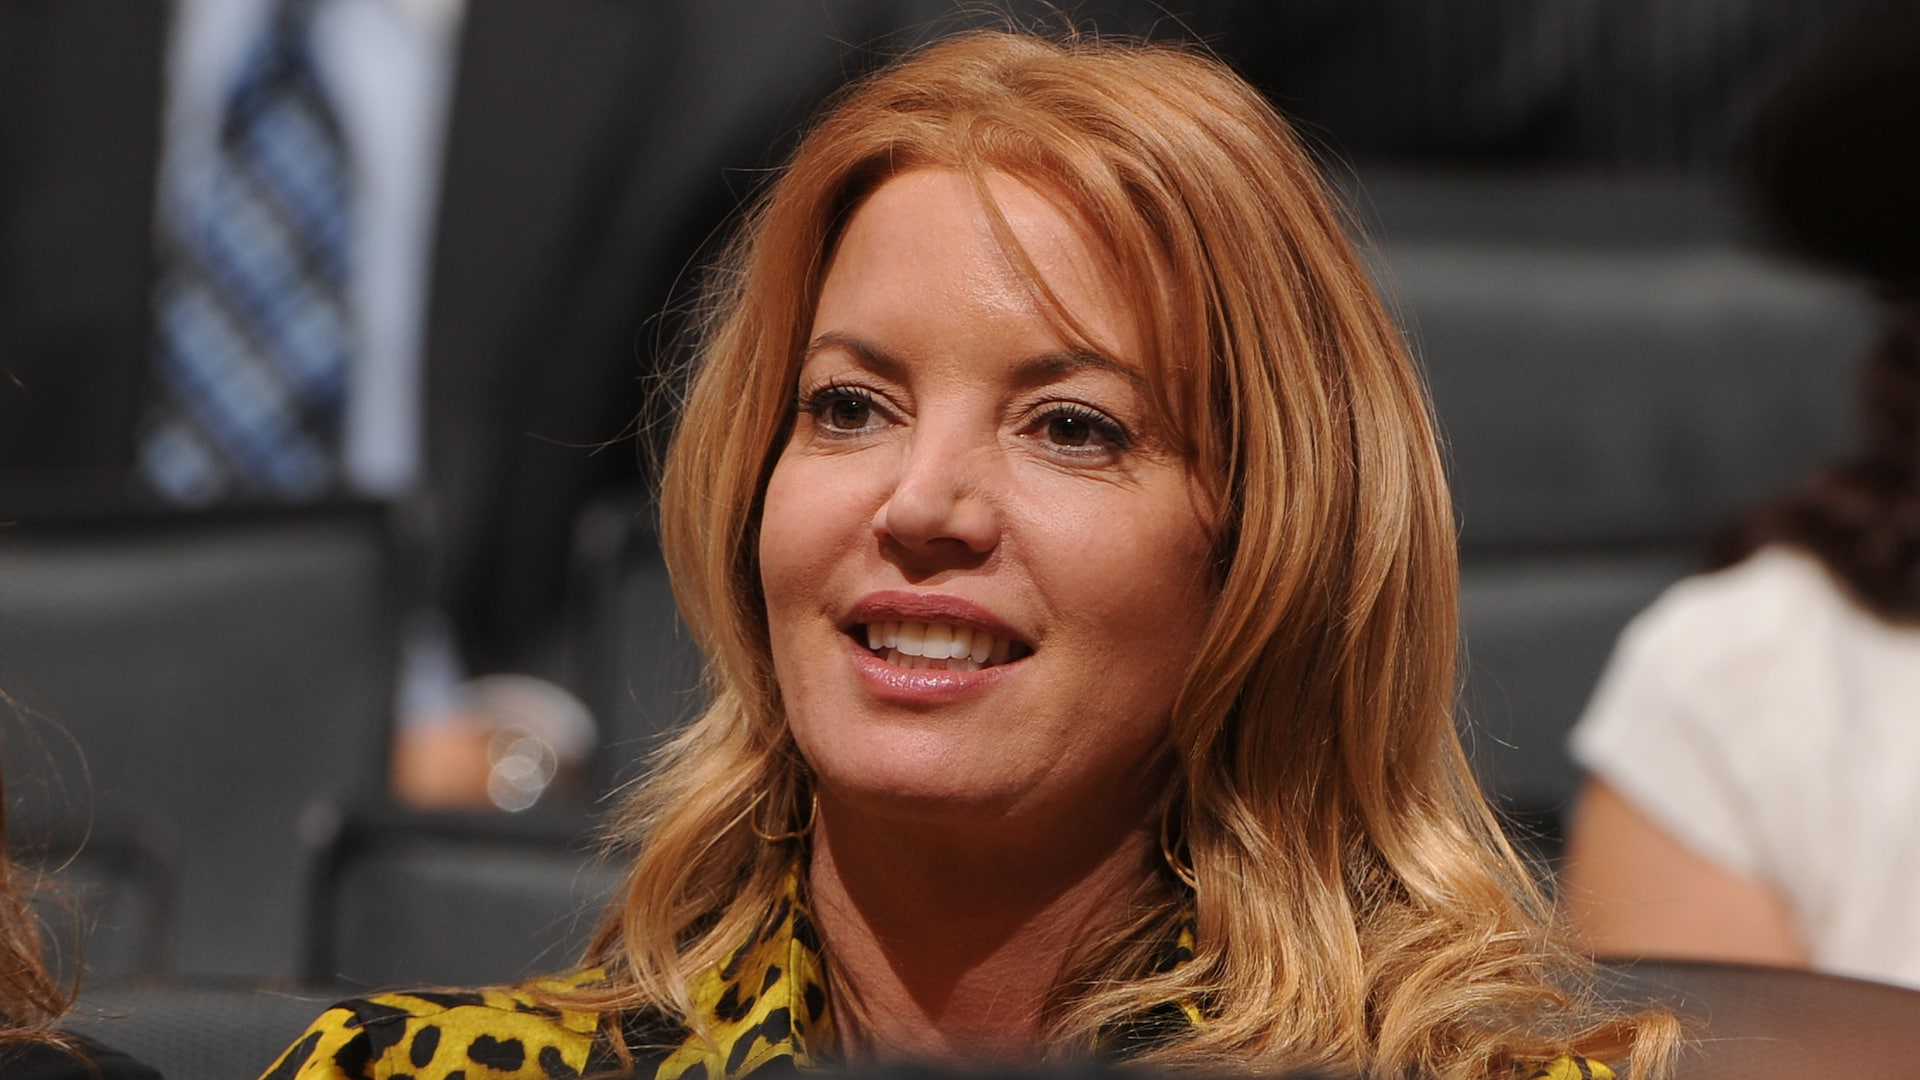 Lakers' Jeanie Buss wants white people to stop ignoring racism